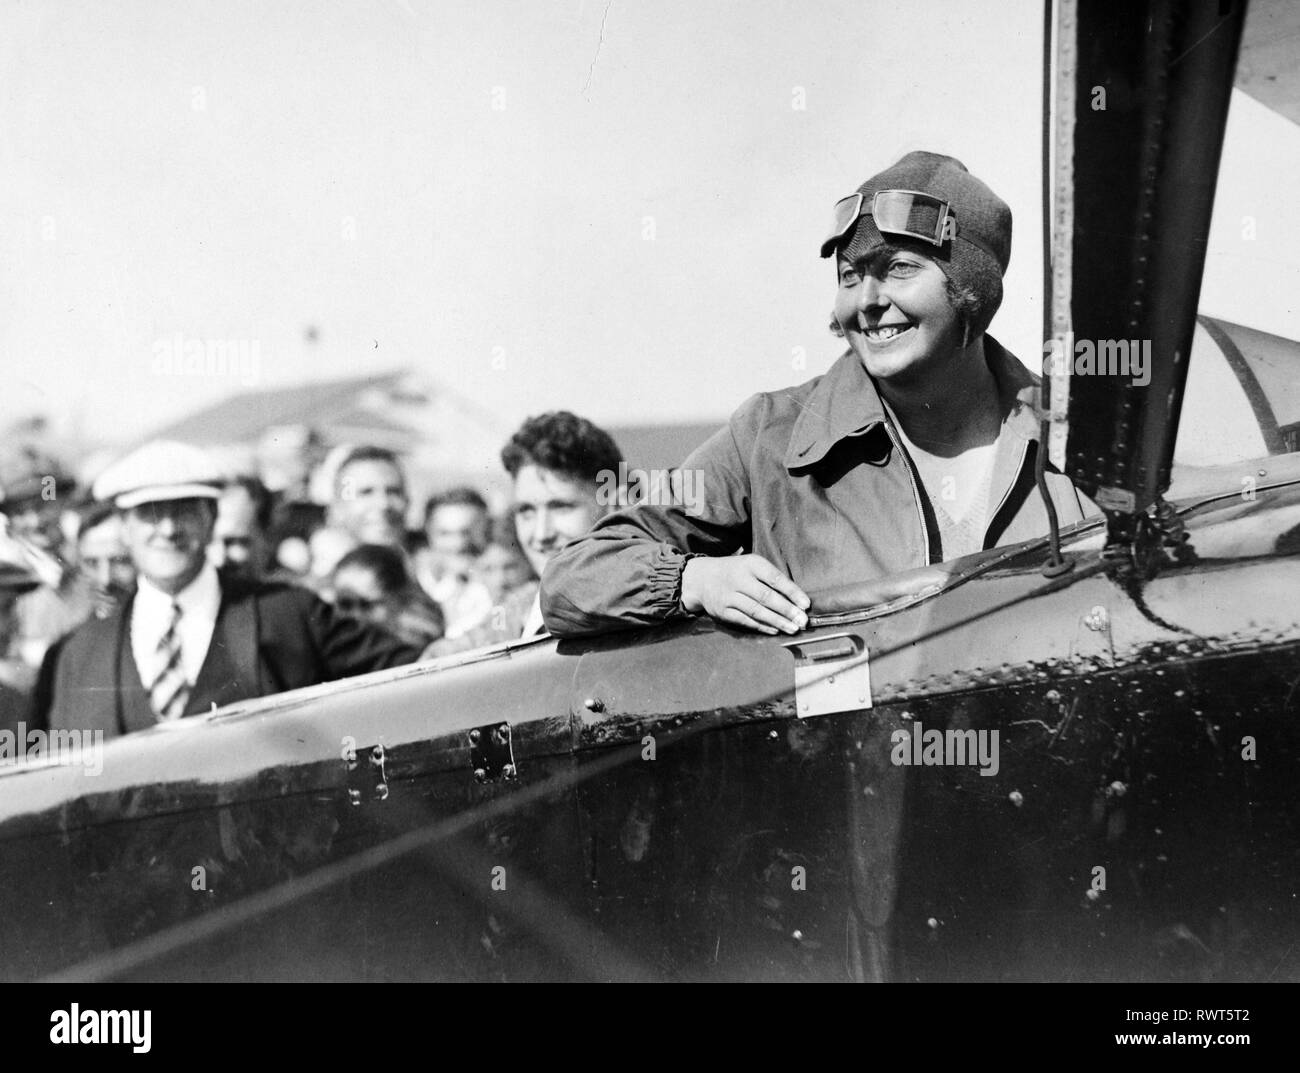 THEA RASCHE (1899-1971) Germany's first aerobatics pilot in 1930 - Stock Image